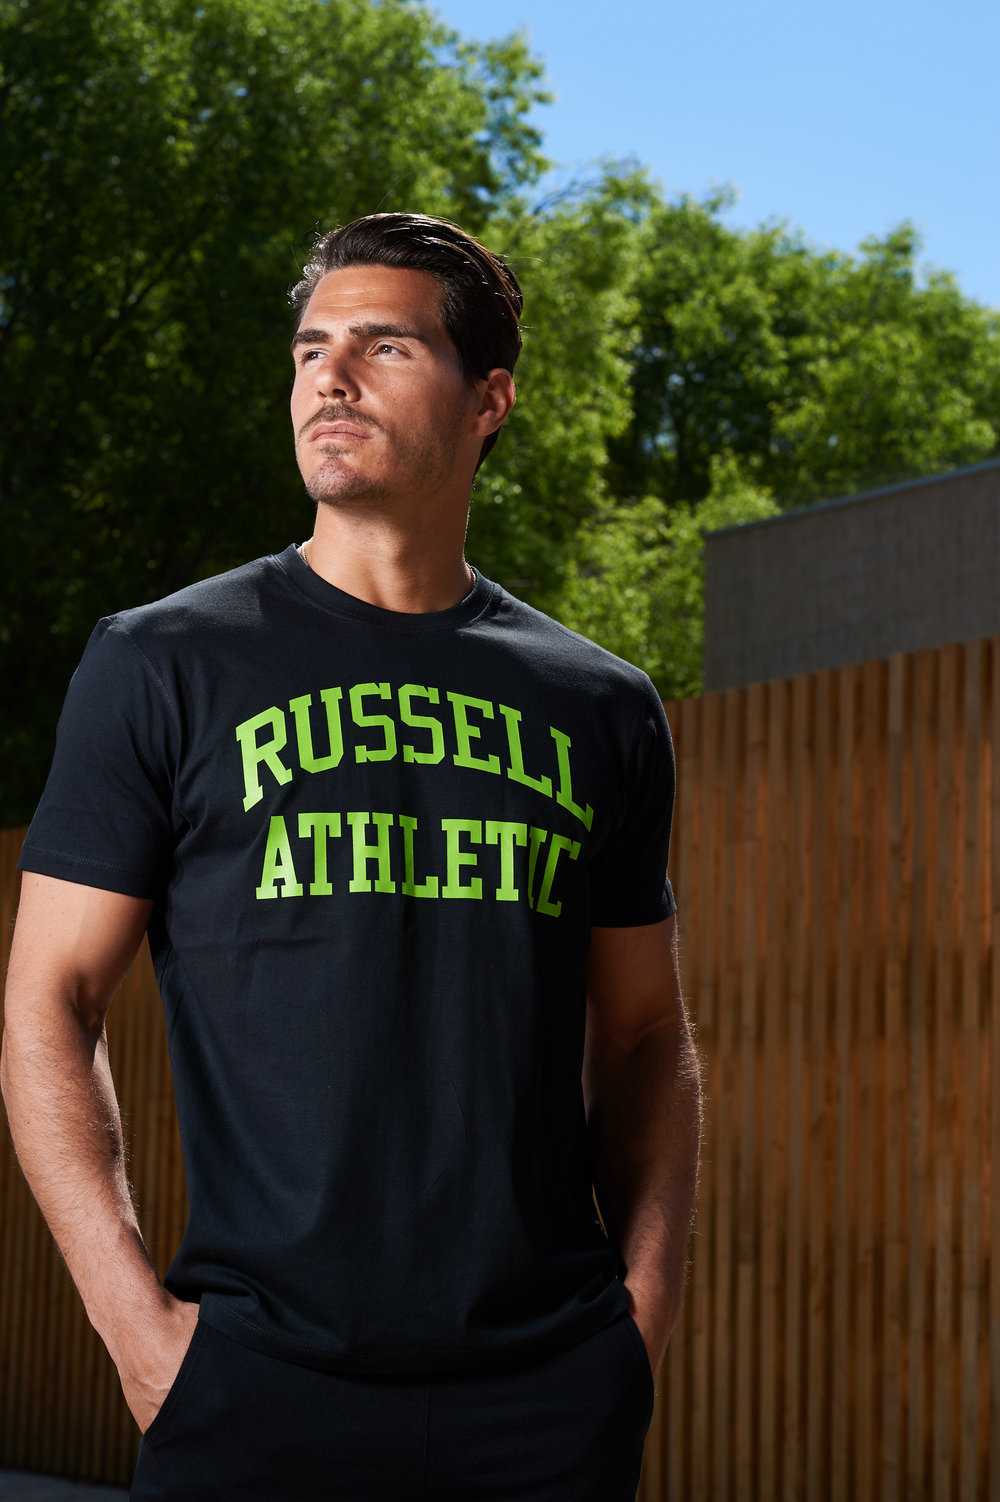 Russell Athletic Summer 2017_exterior_day2_0894.jpg